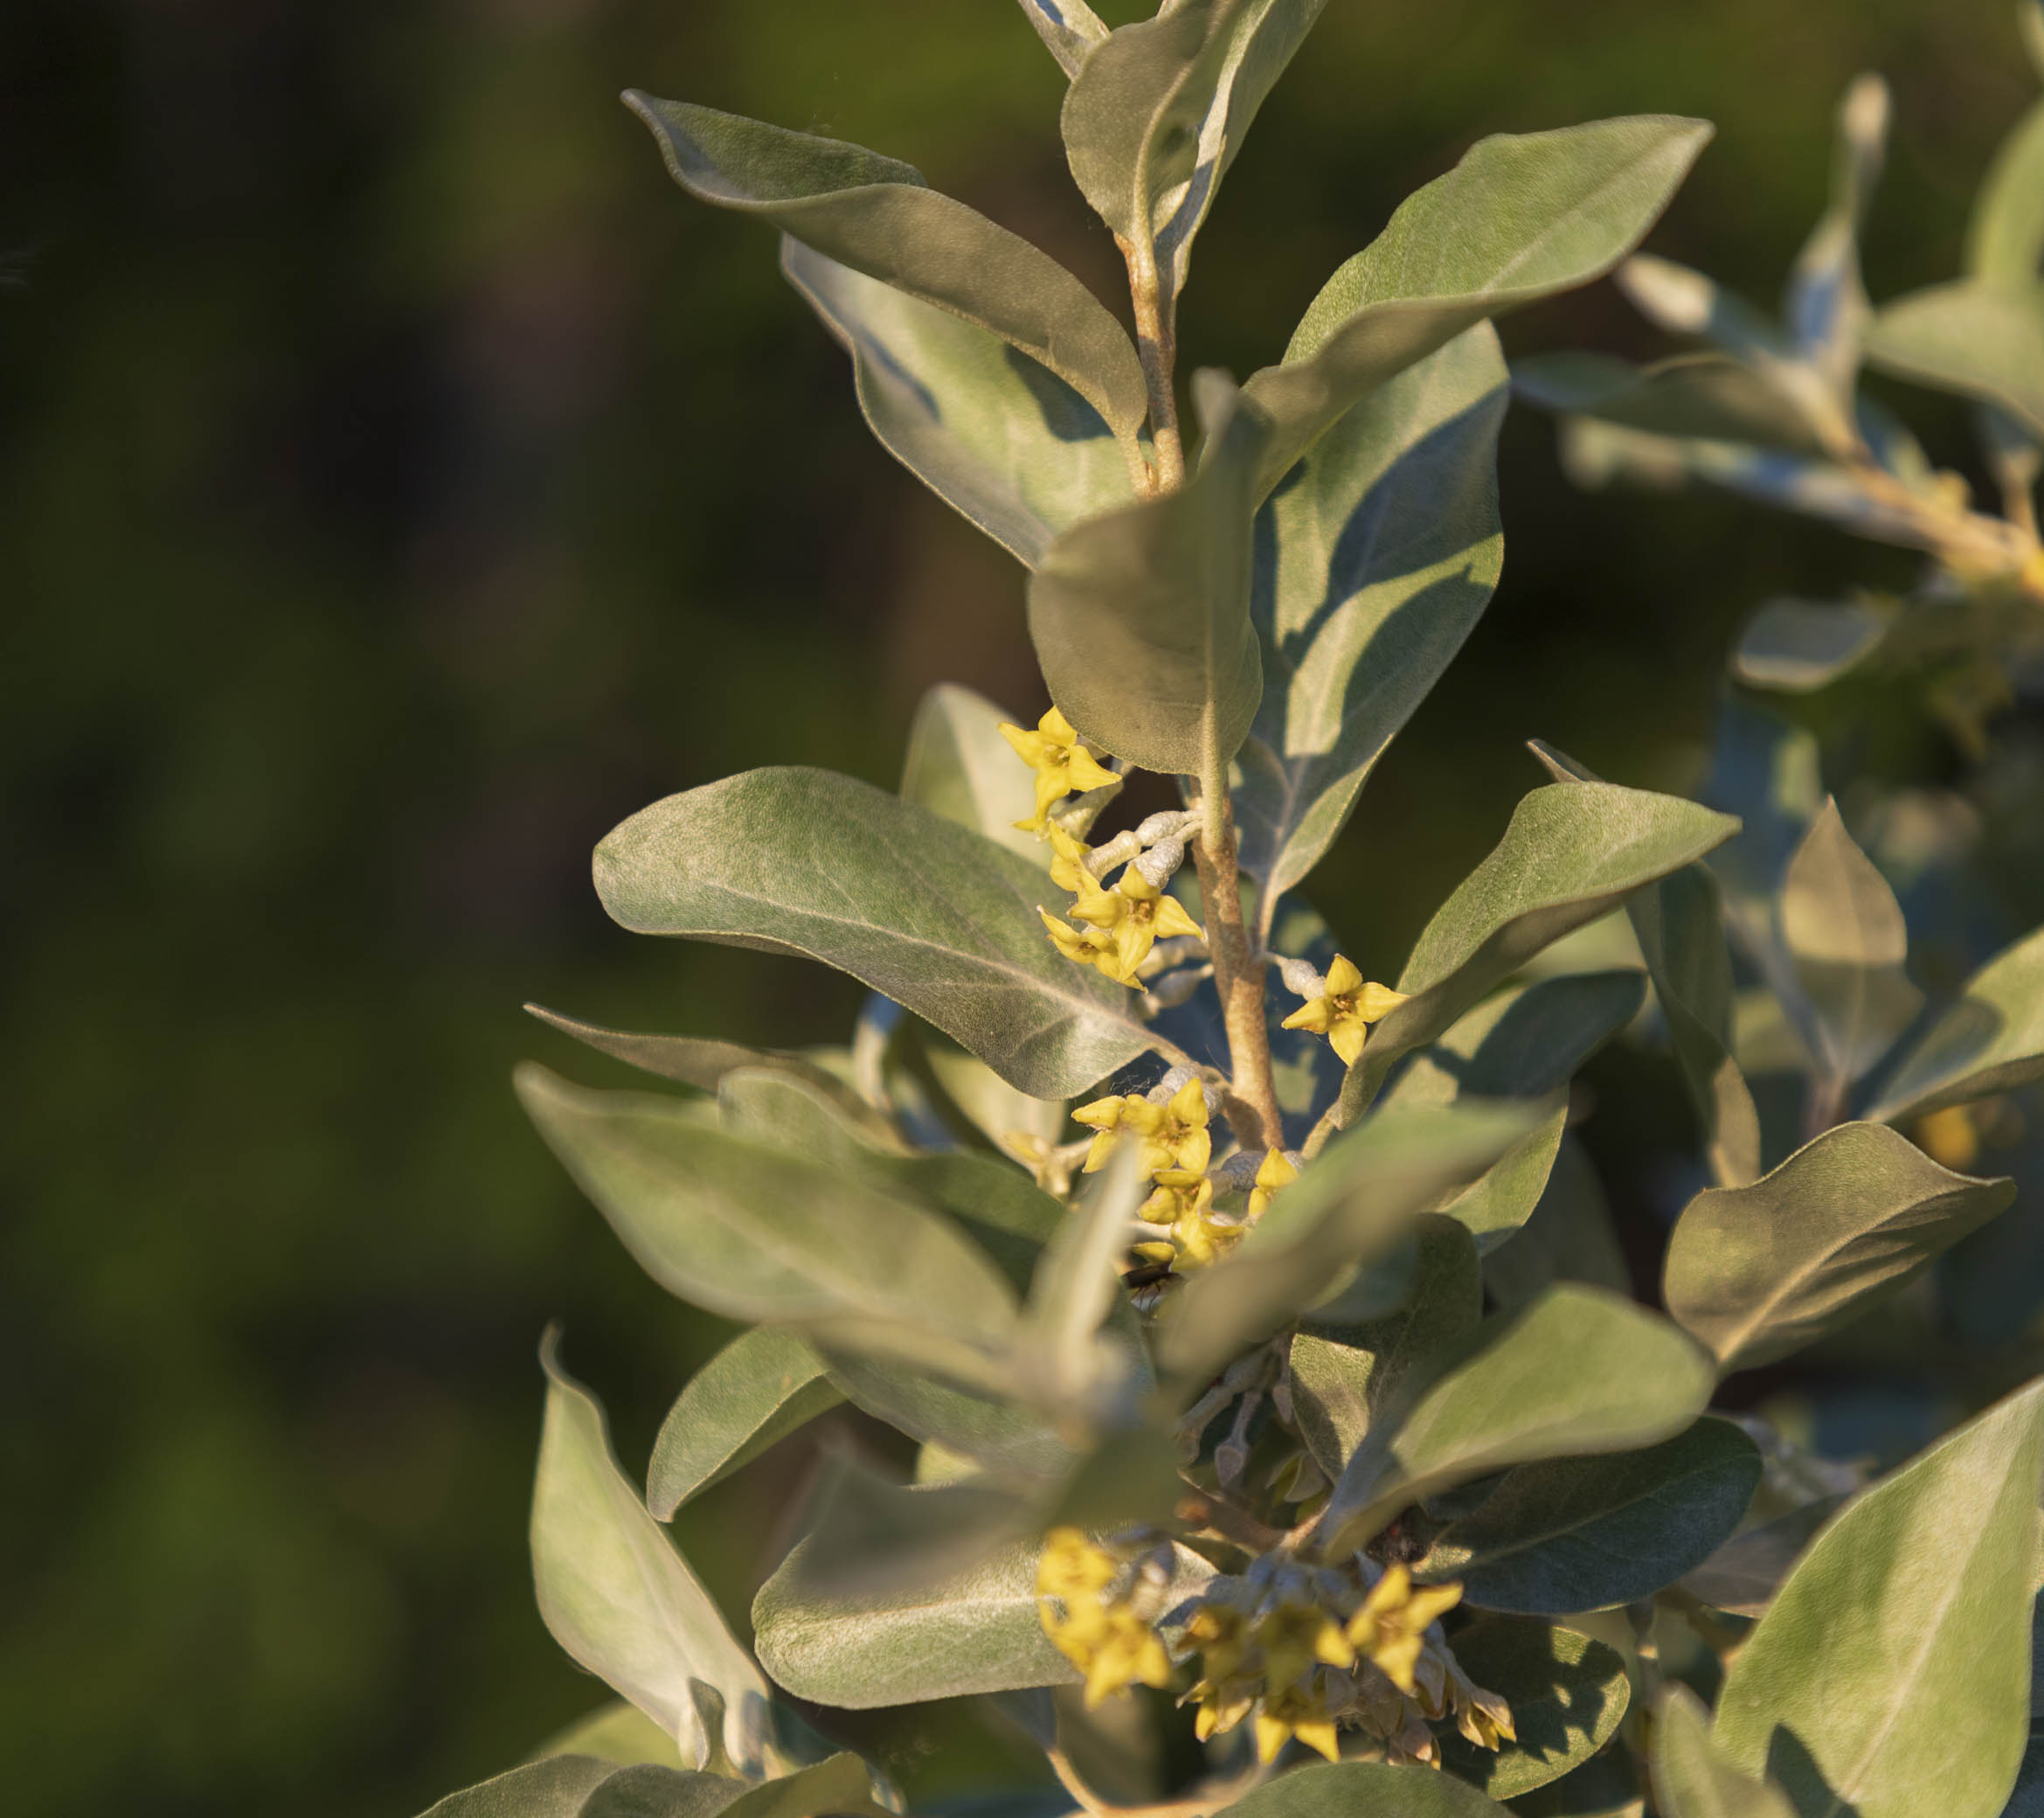 Elaeagnus commutata , the silverberry or wolf-willow